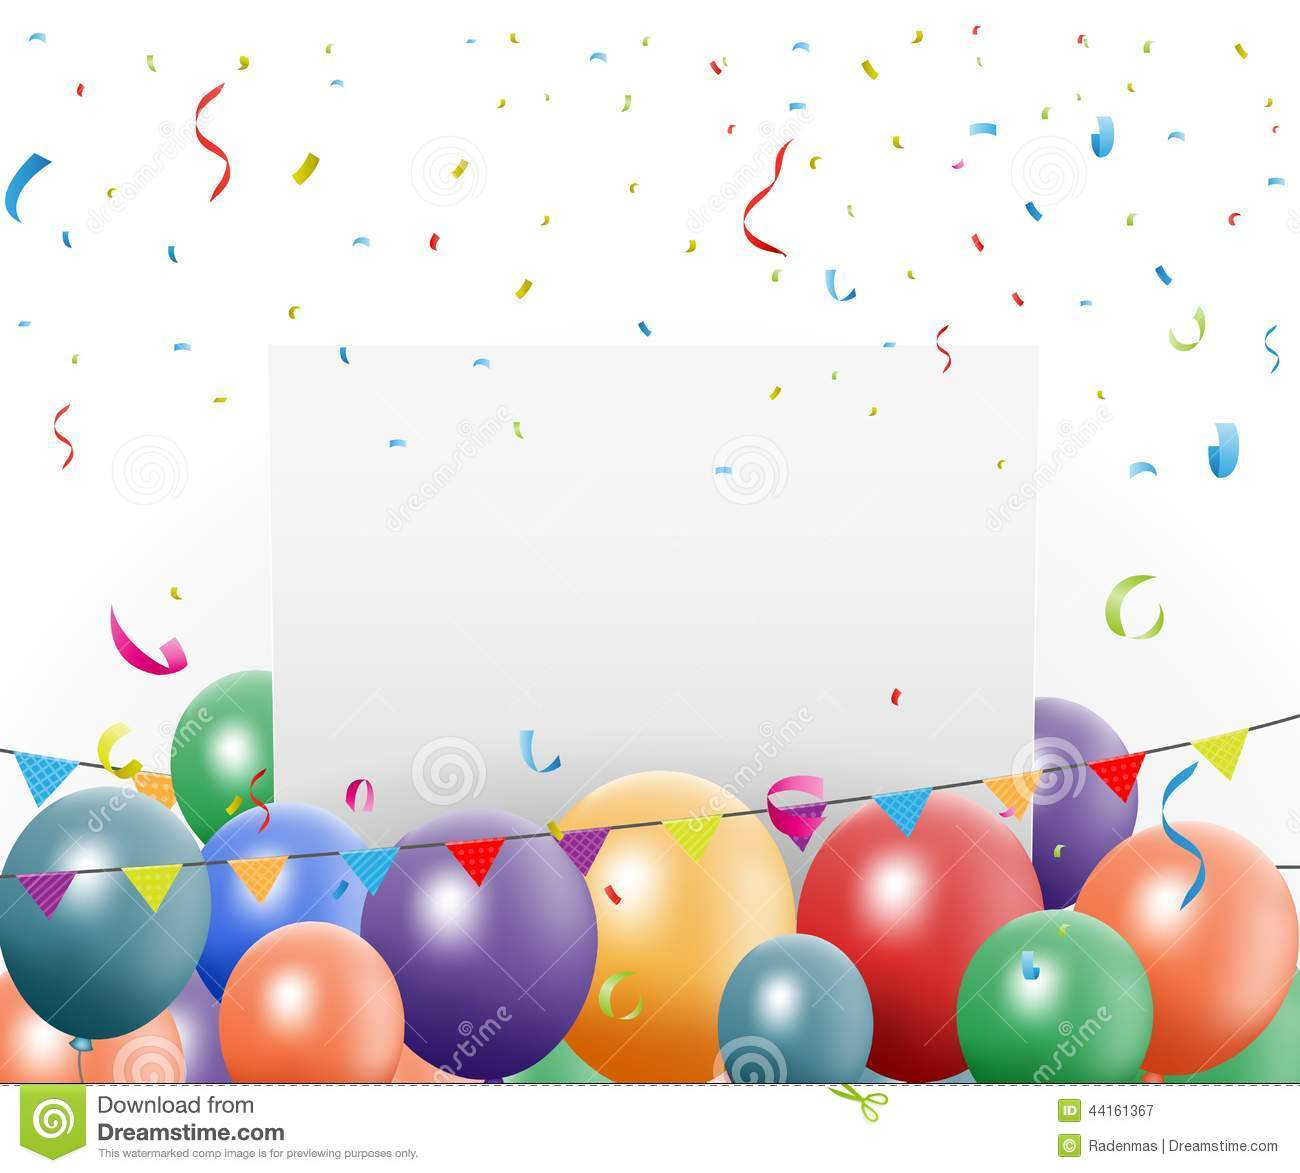 birthday celebration design with balloon and confetti clipart confetti falling clip art confetti borders